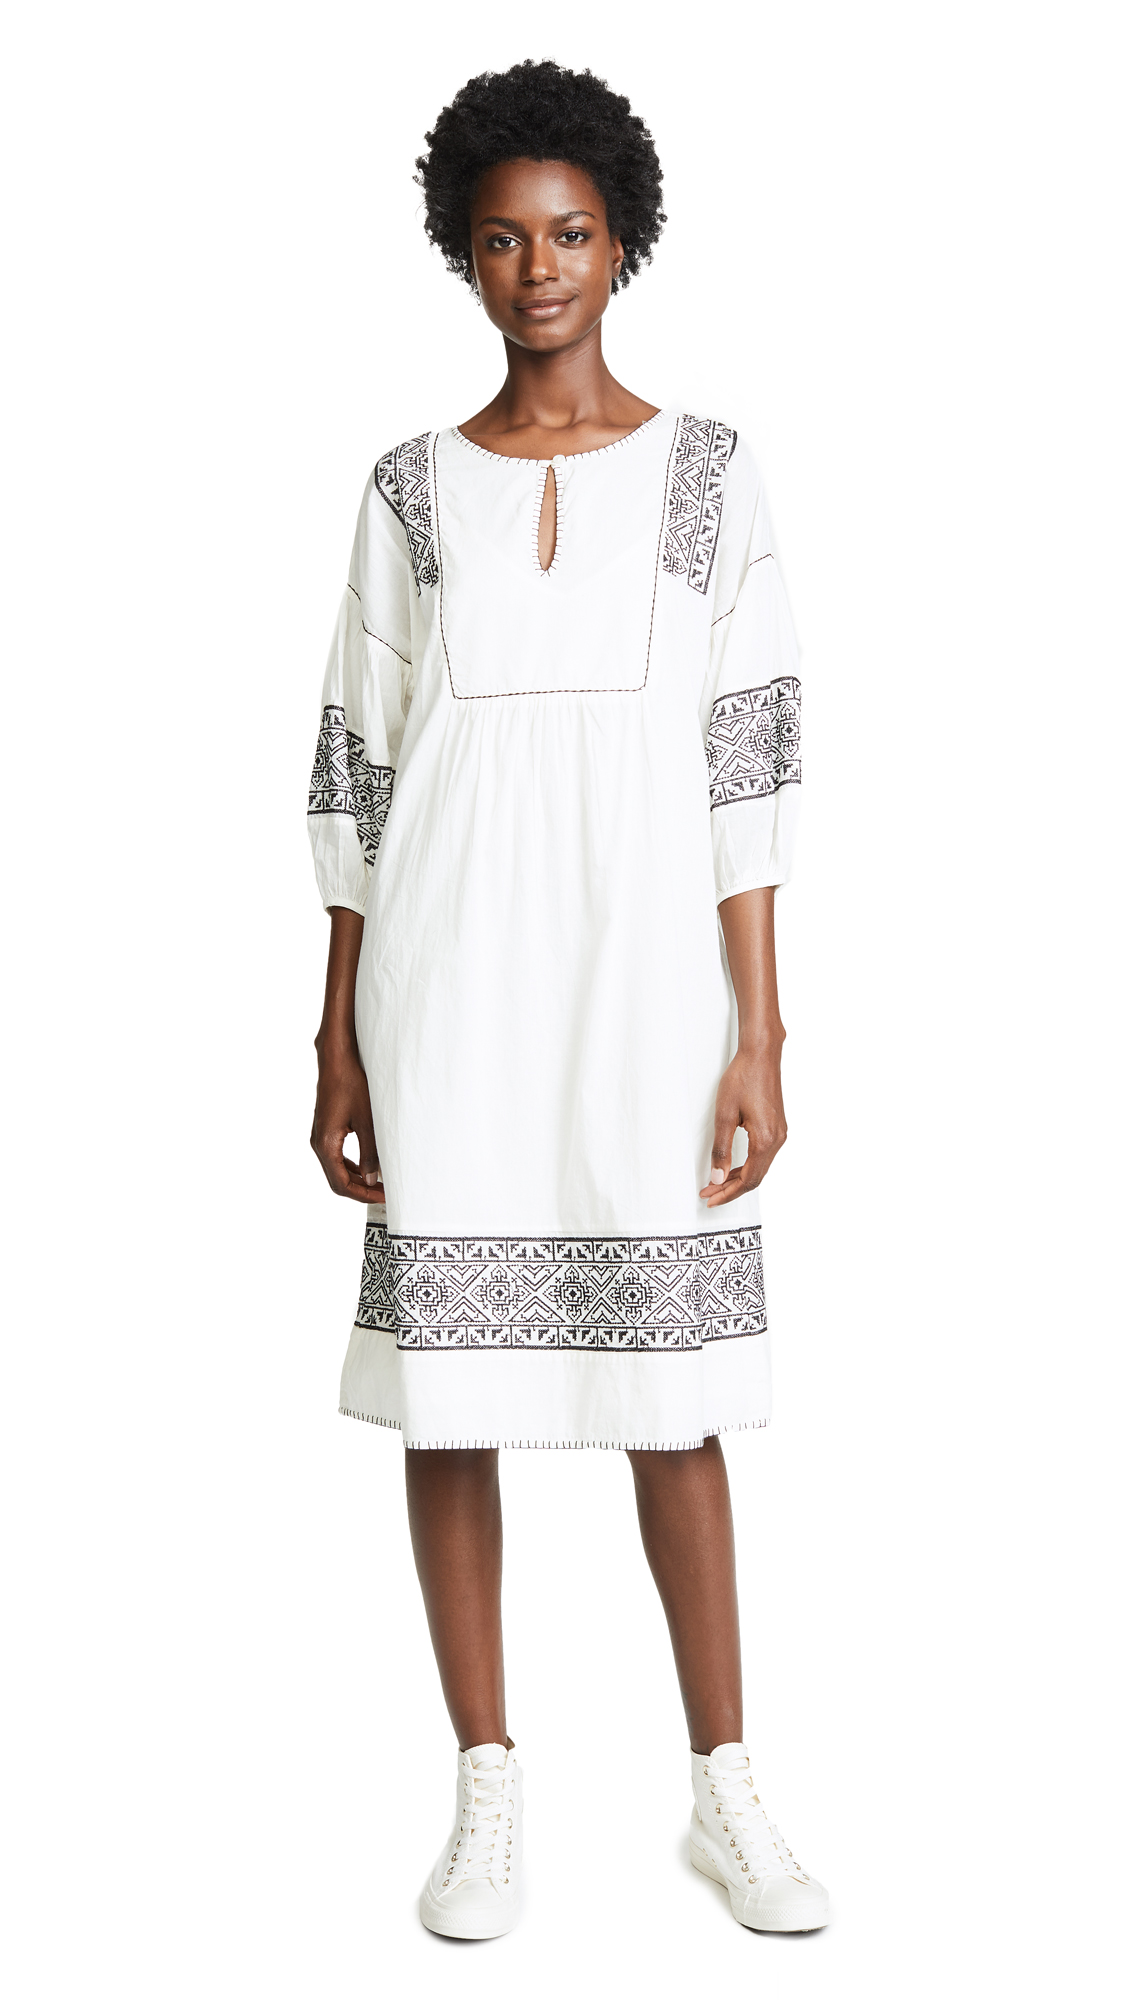 THE LOVELY TUNIC DRESS